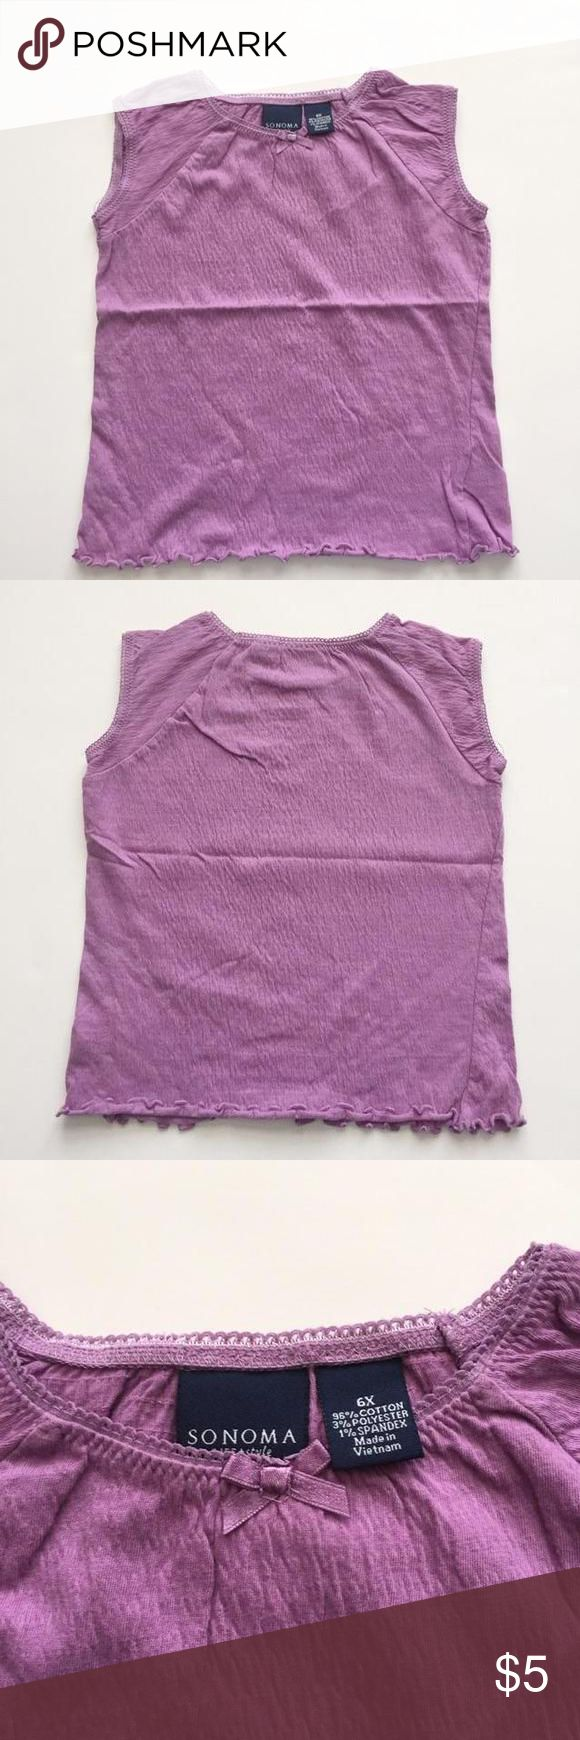 🍄PURPLE SMOCKED TOP This purple top it's in like new  condition.  this is a fully smocked top. Perfect for the Sumer! 🌸BUNDLE AnD SAVE MORE🌸 Sonoma Shirts & Tops Tees - Short Sleeve